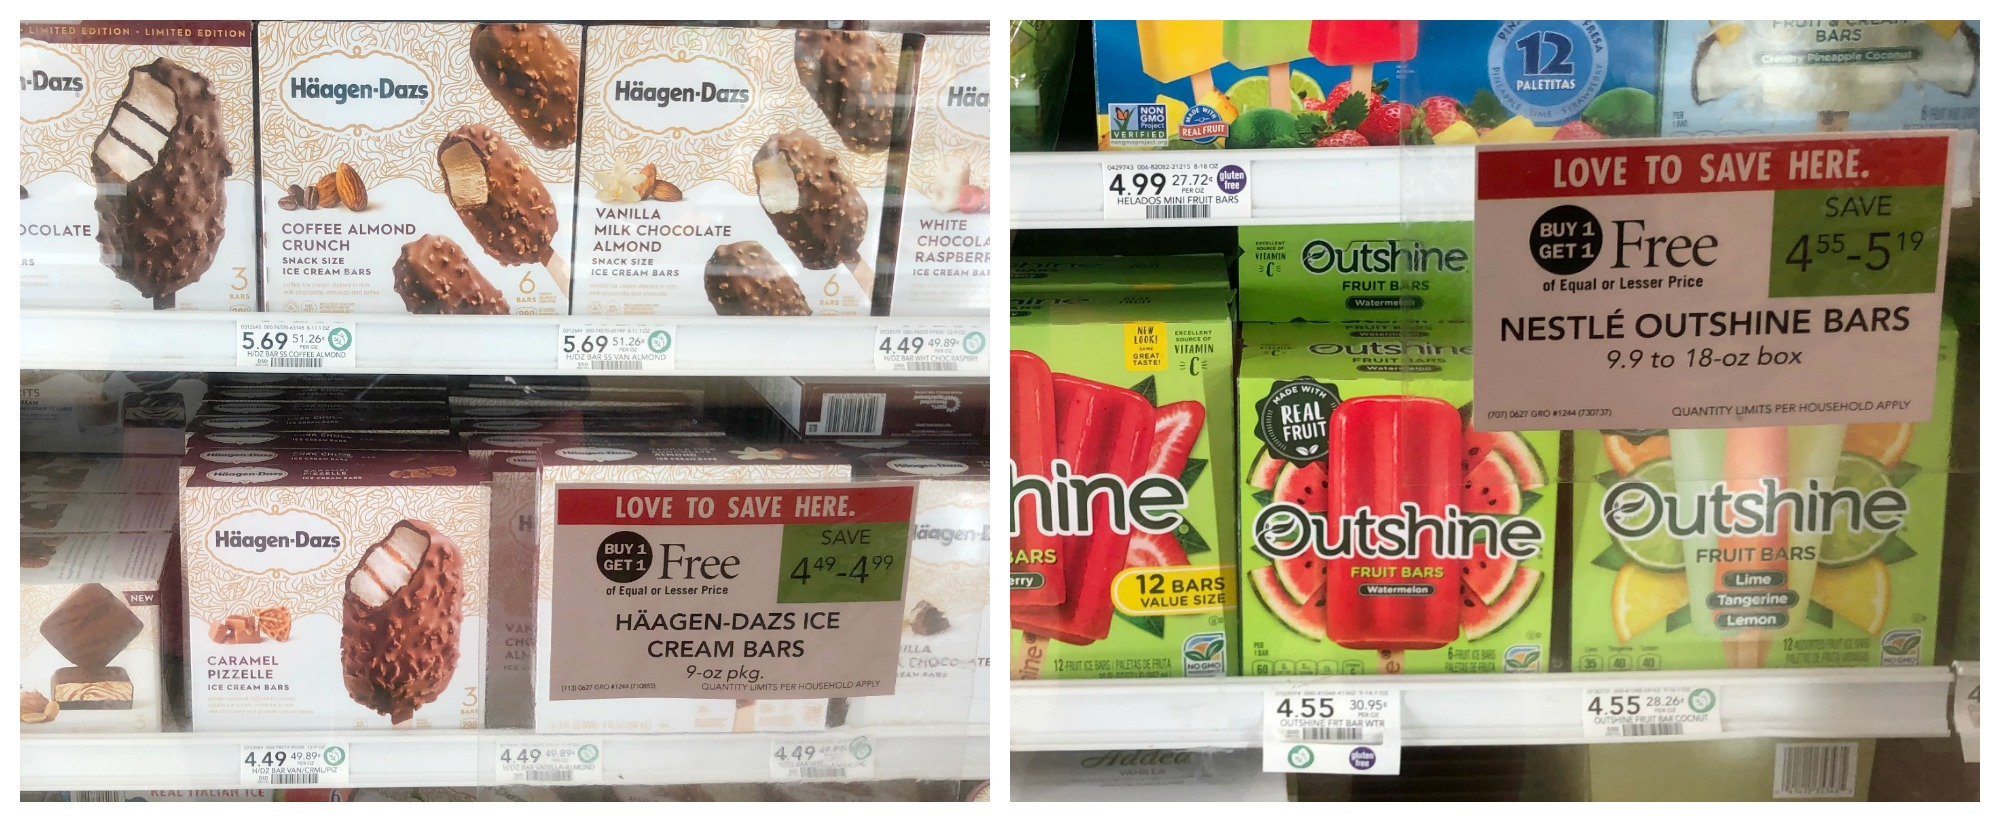 Perfect Week To Earn Your Publix Gift Card in The Have Happy On Hand Reward Offer (BOGO Sales On Häagen-Dazs & Outshine Bars!) on I Heart Publix